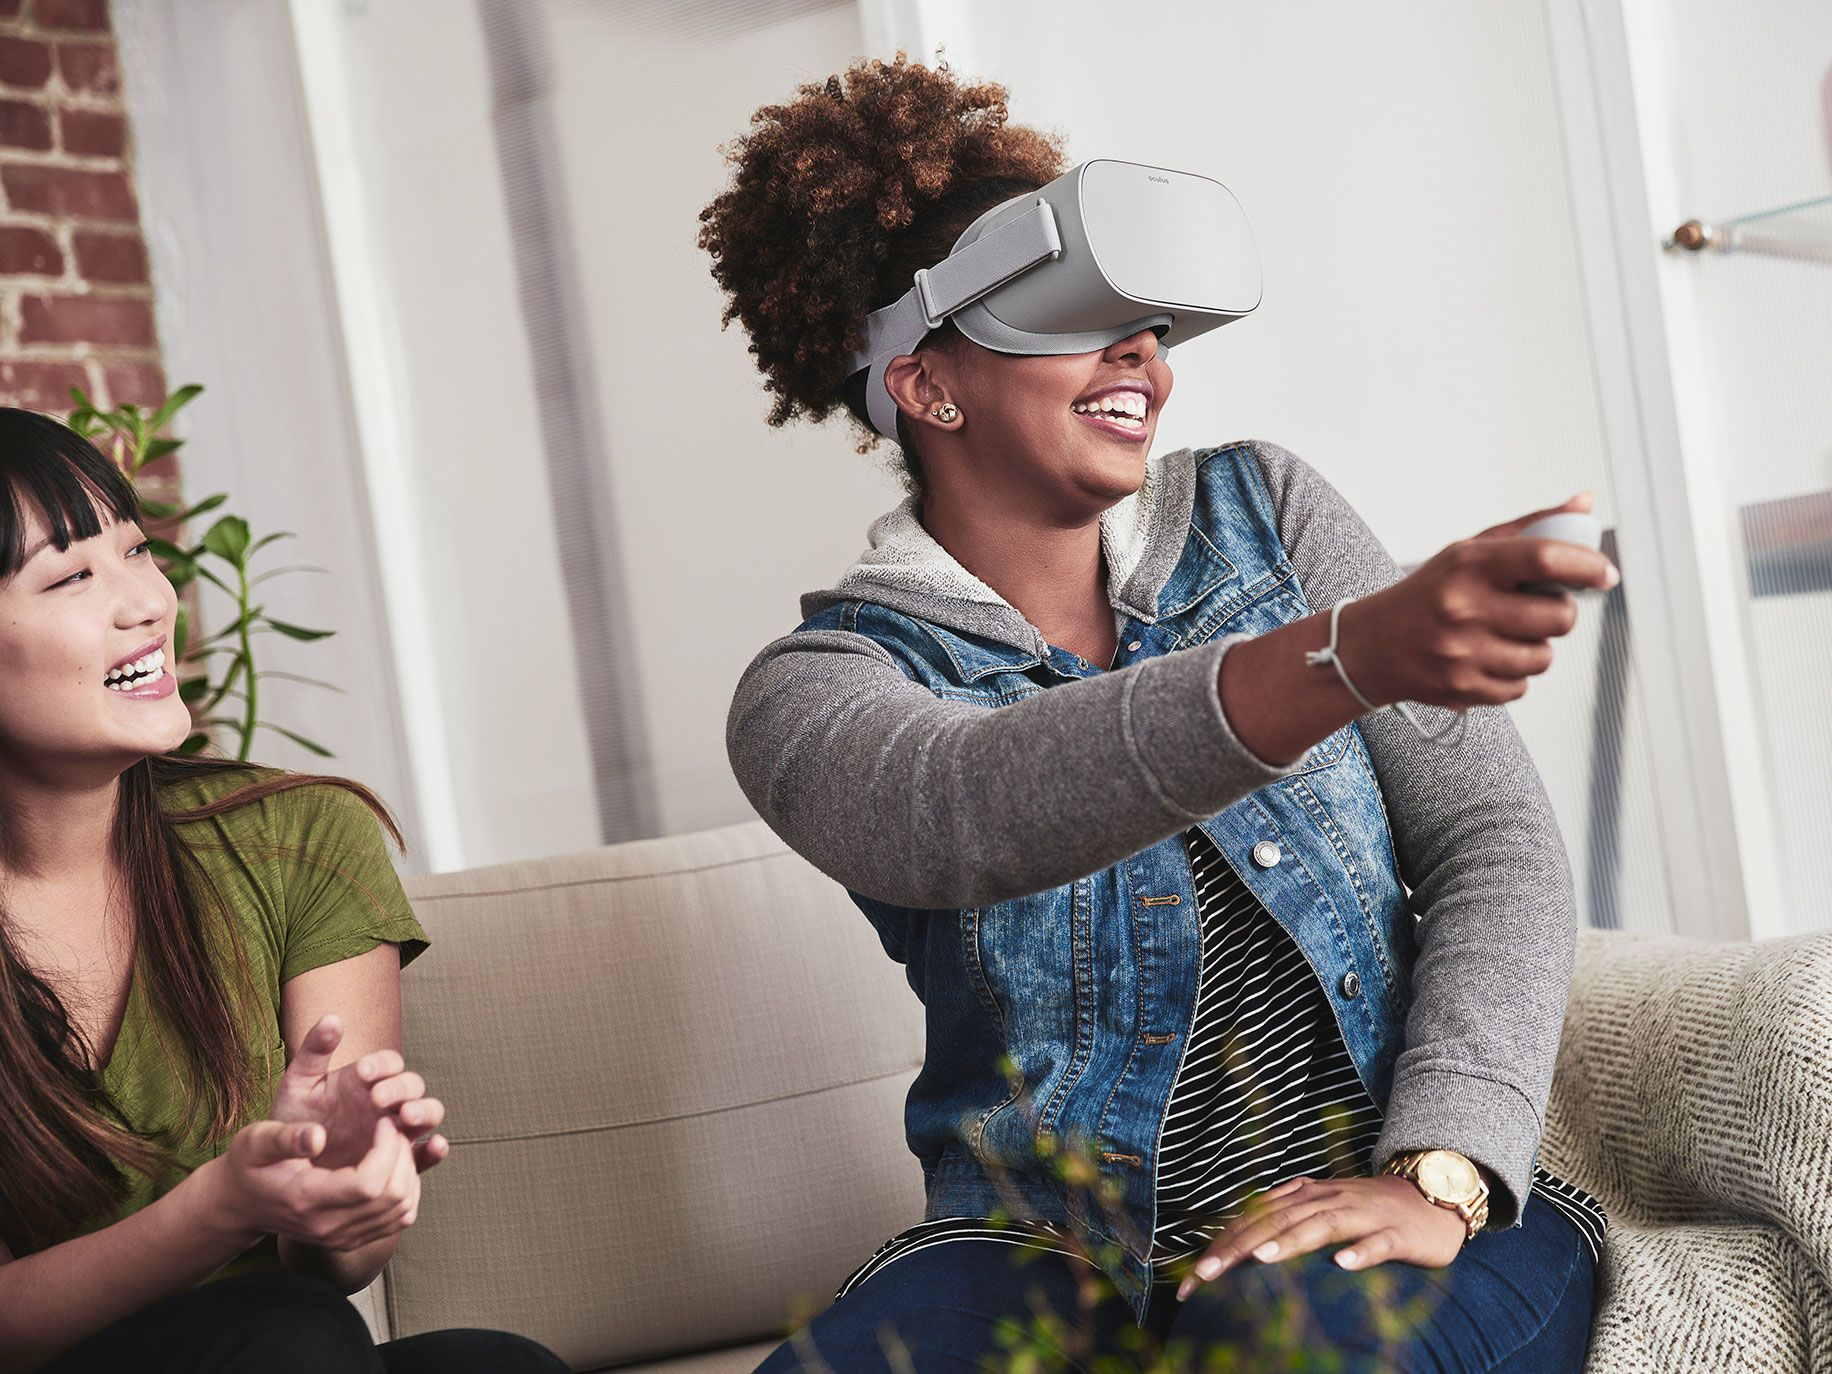 The Oculus Go offers virtual reality experiences at a budget price.